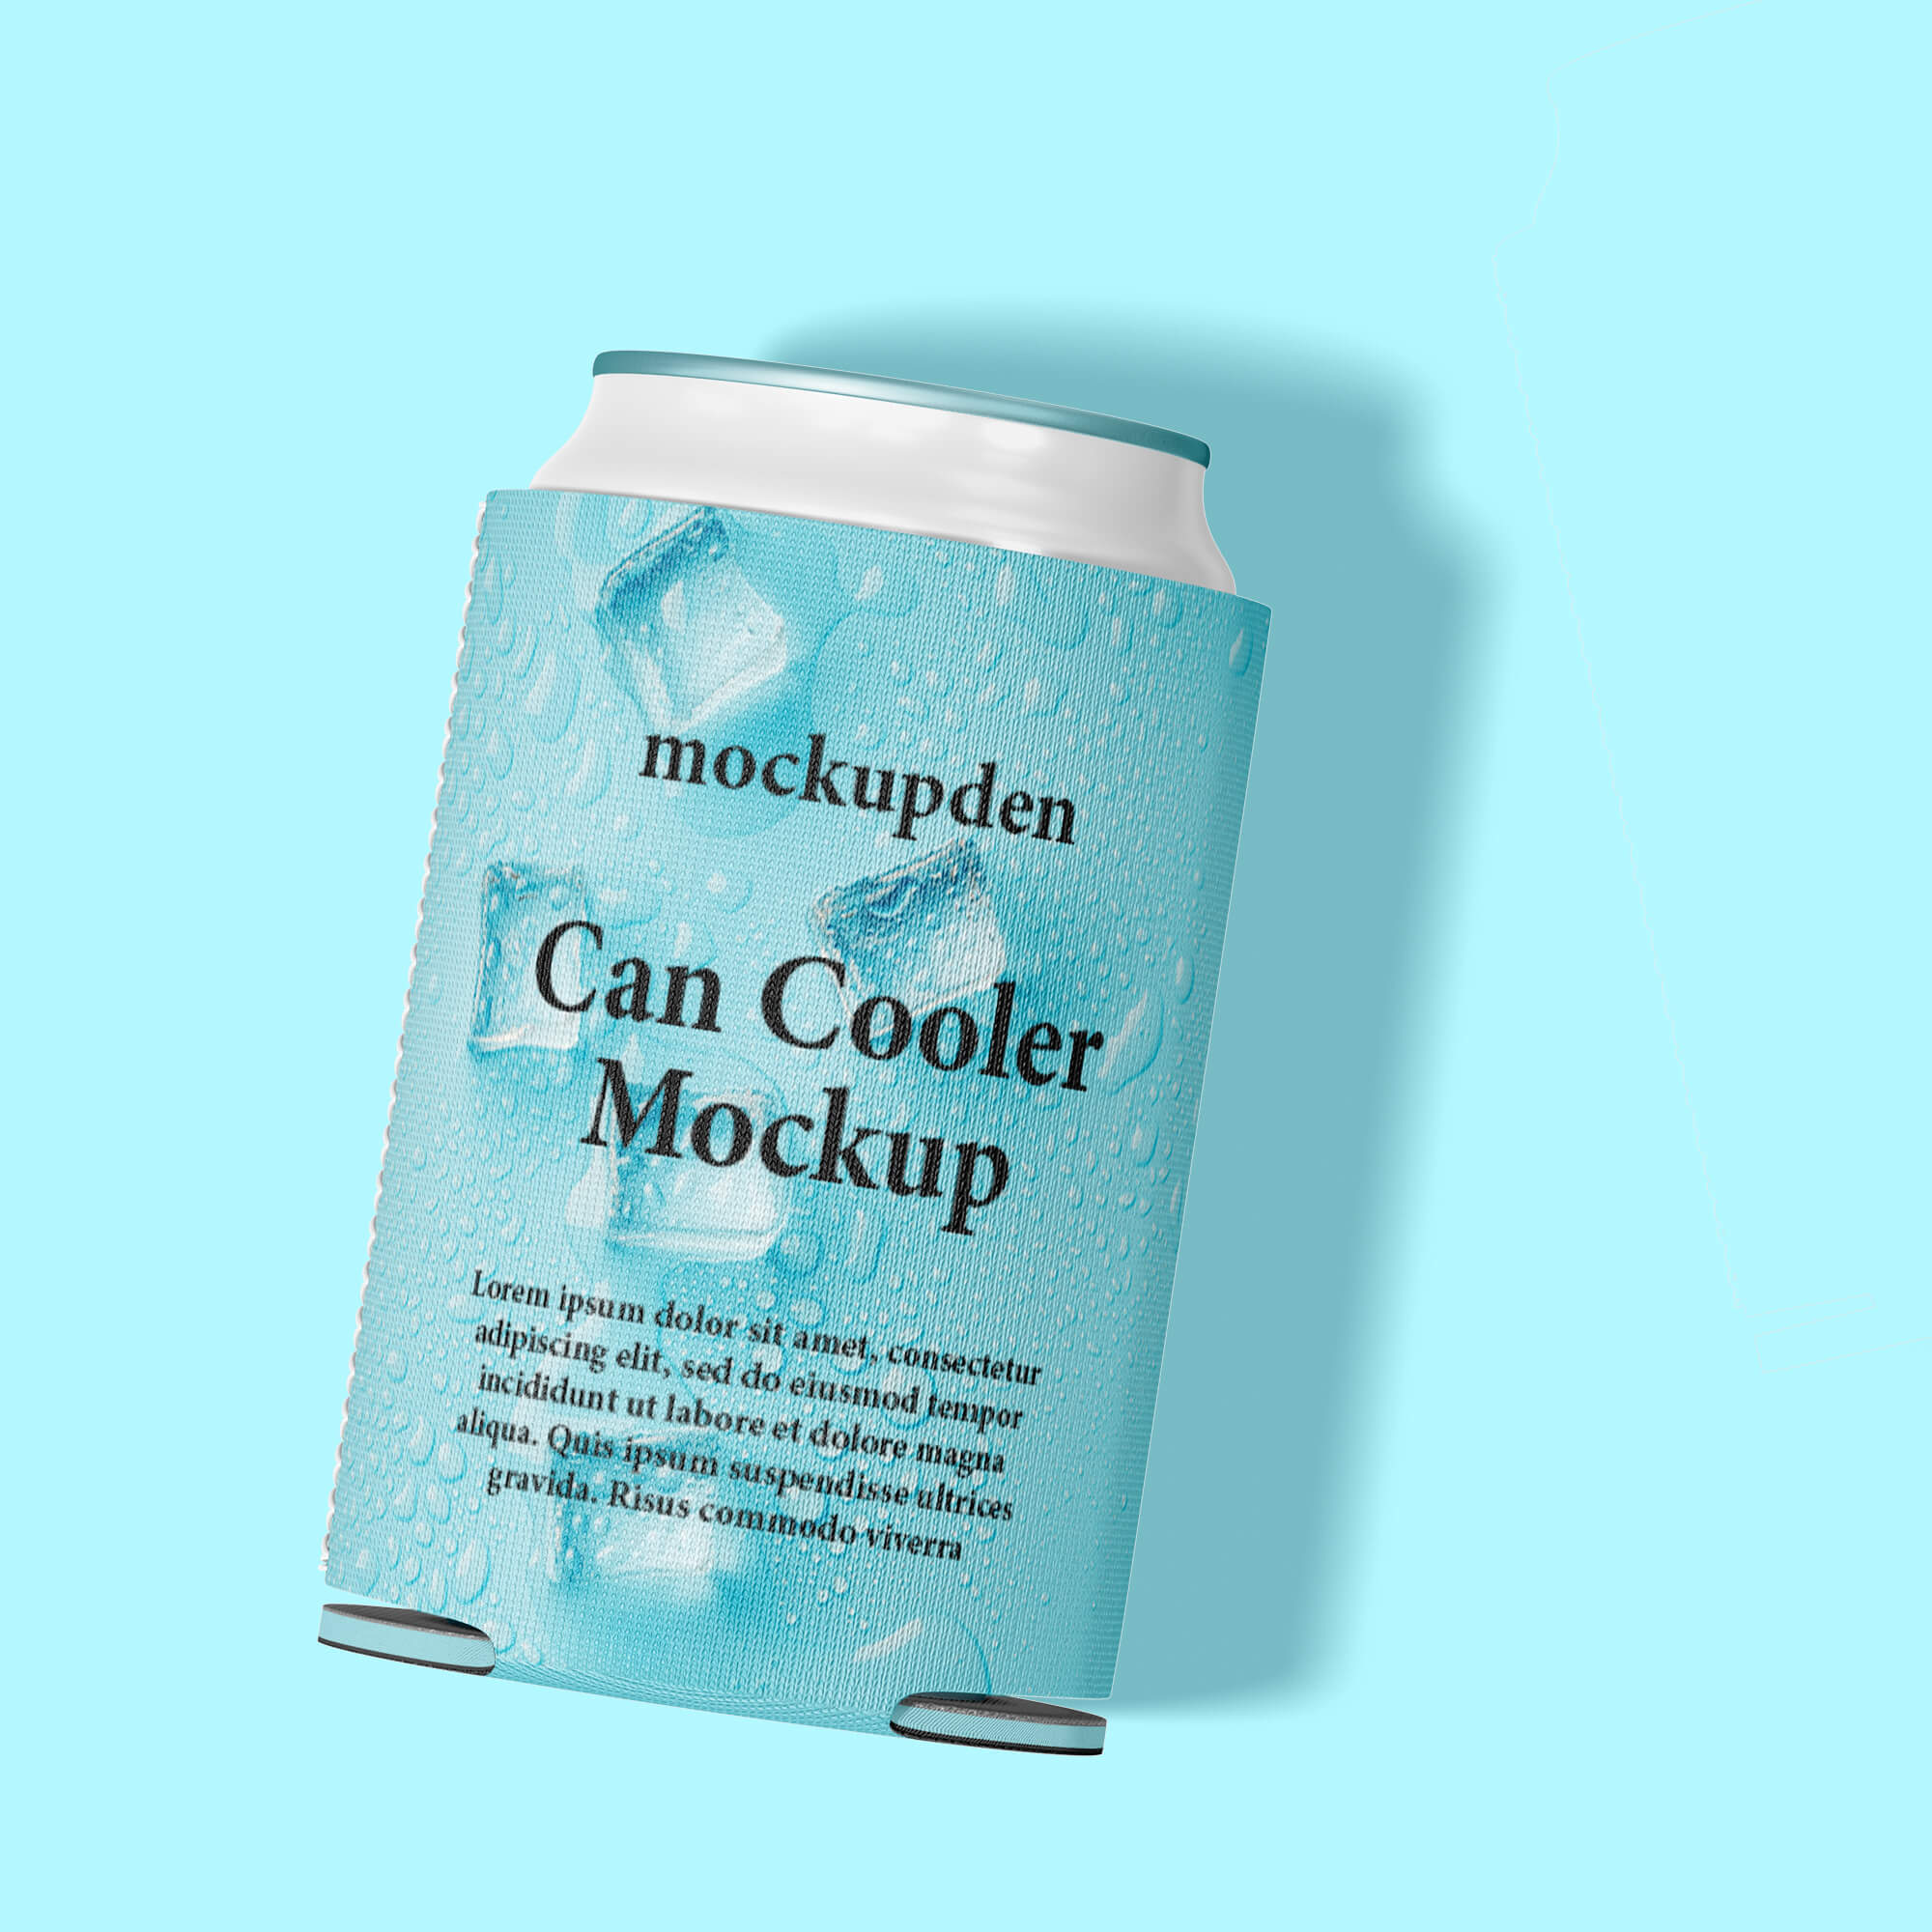 Design Free Can Cooler Mockup PSD Template